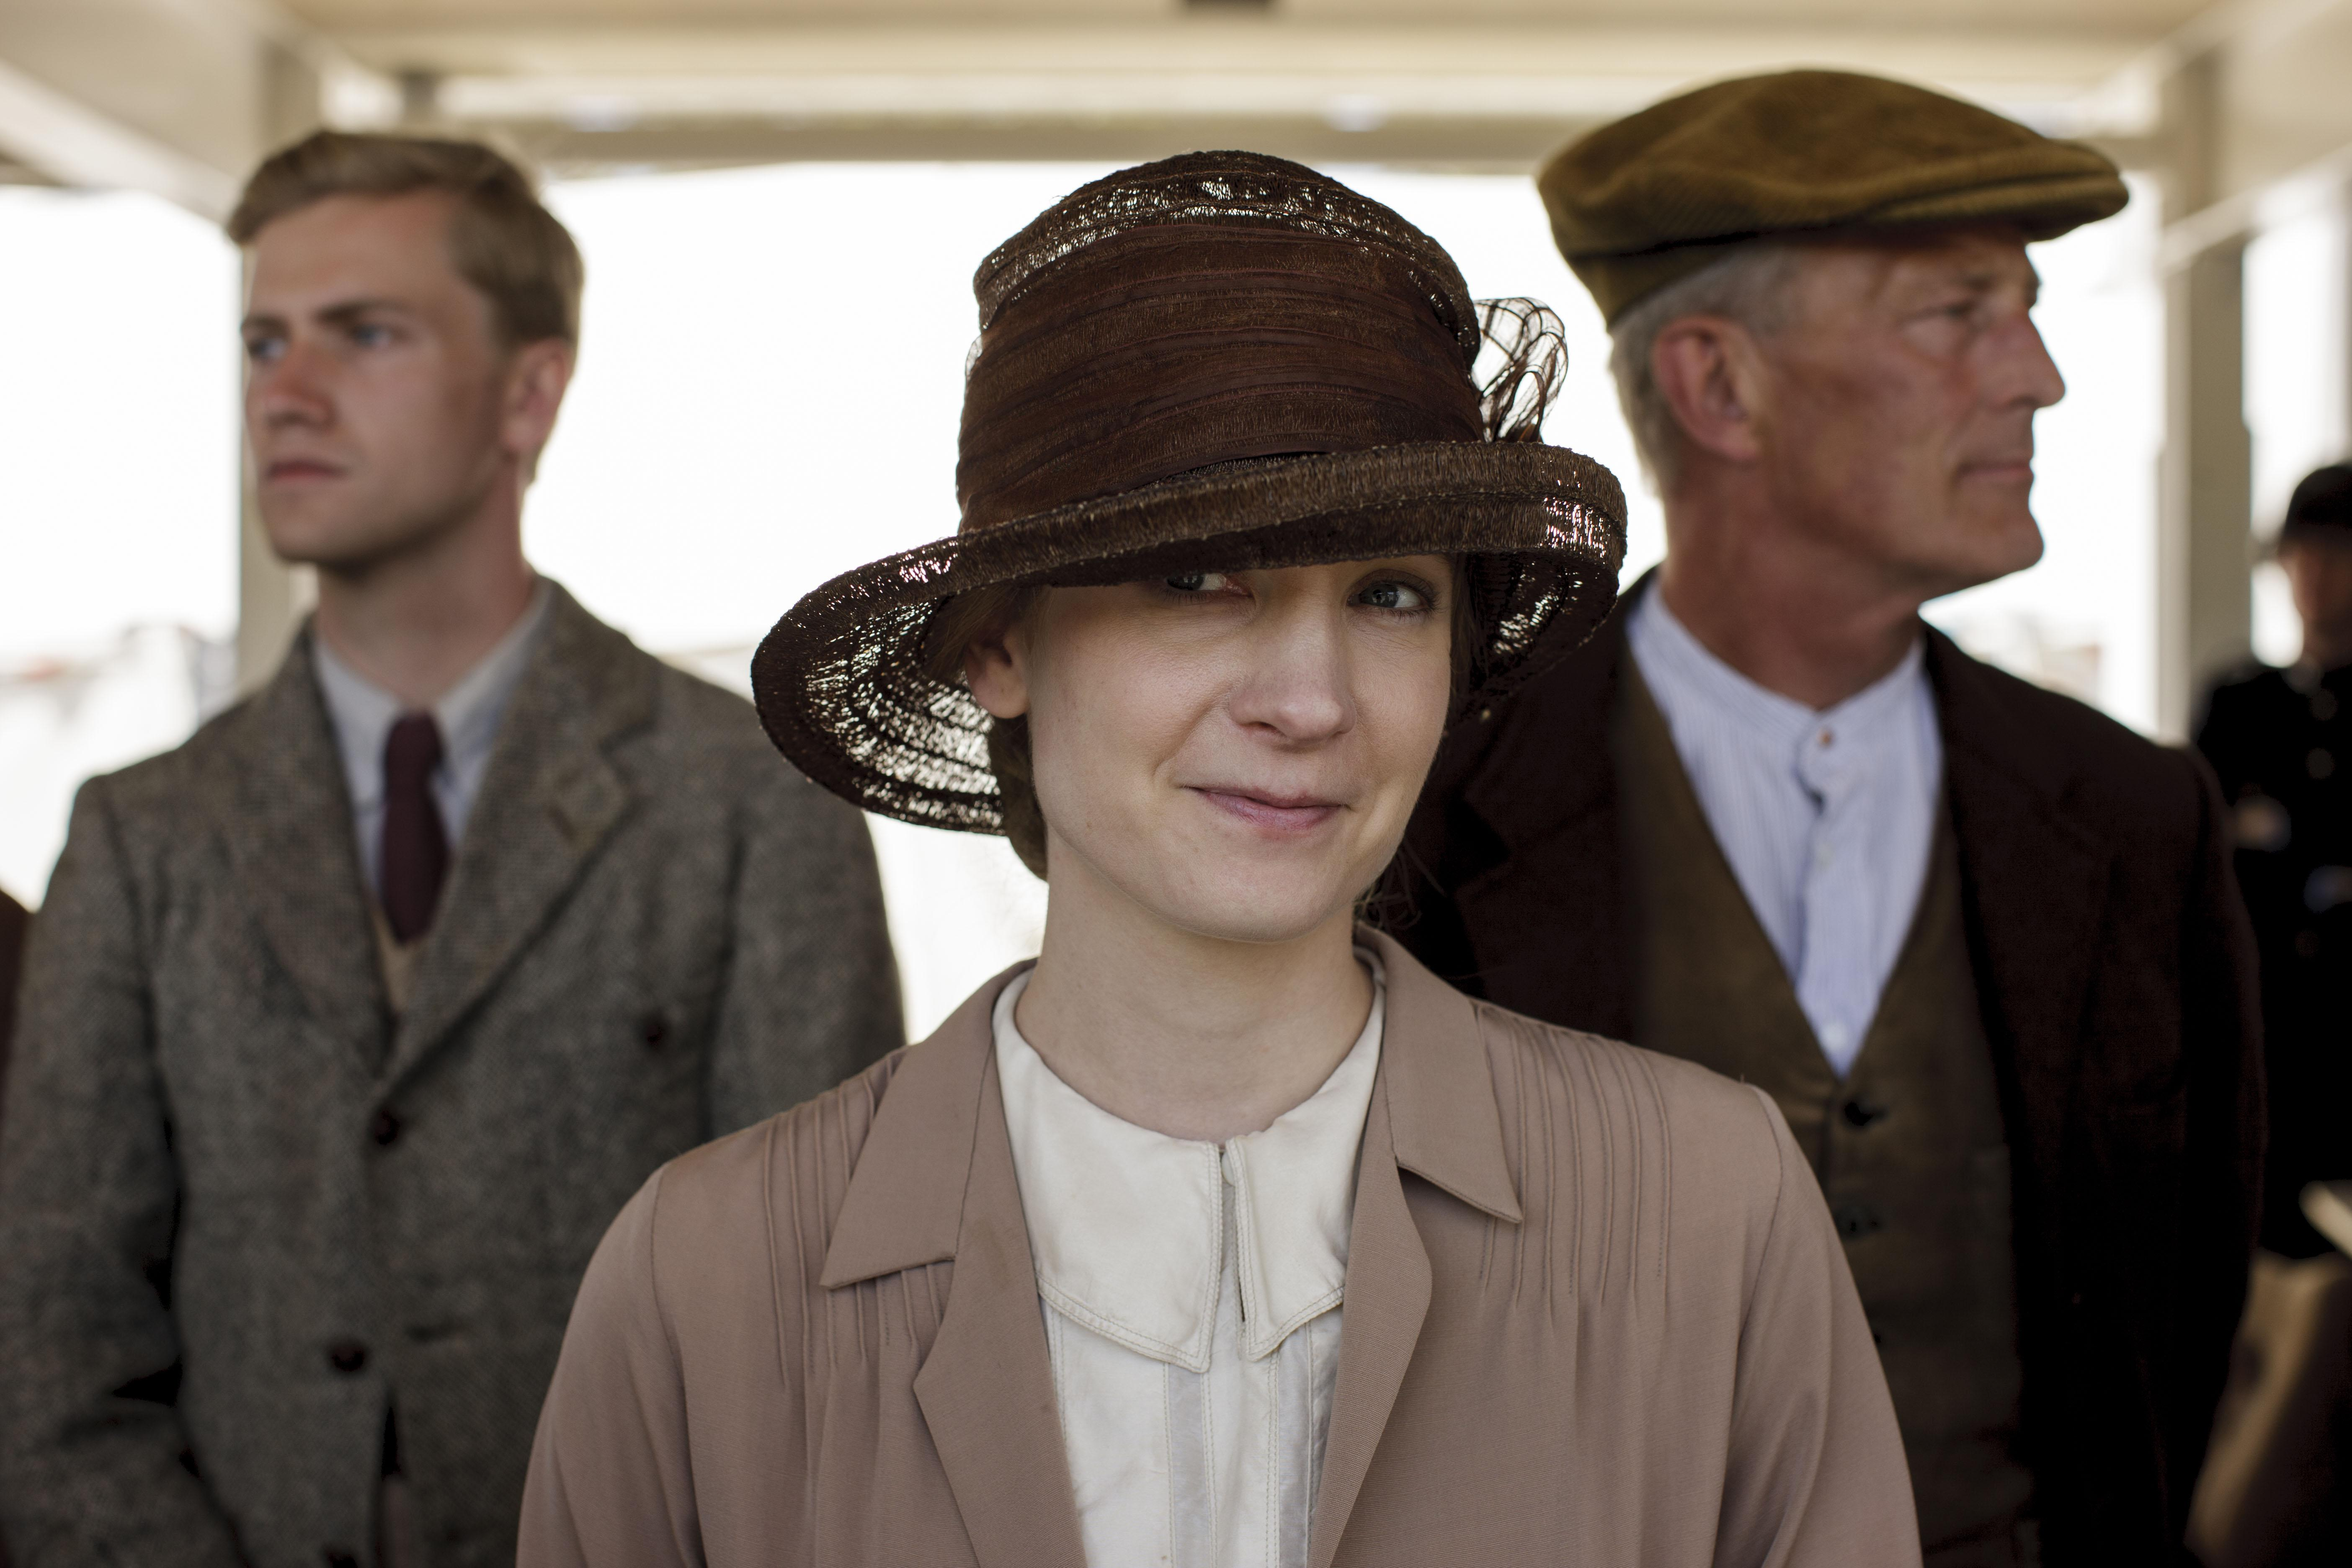 'Downton Abbey' Season 6 Spoilers: Episode 7 Synopsis And Photos Released